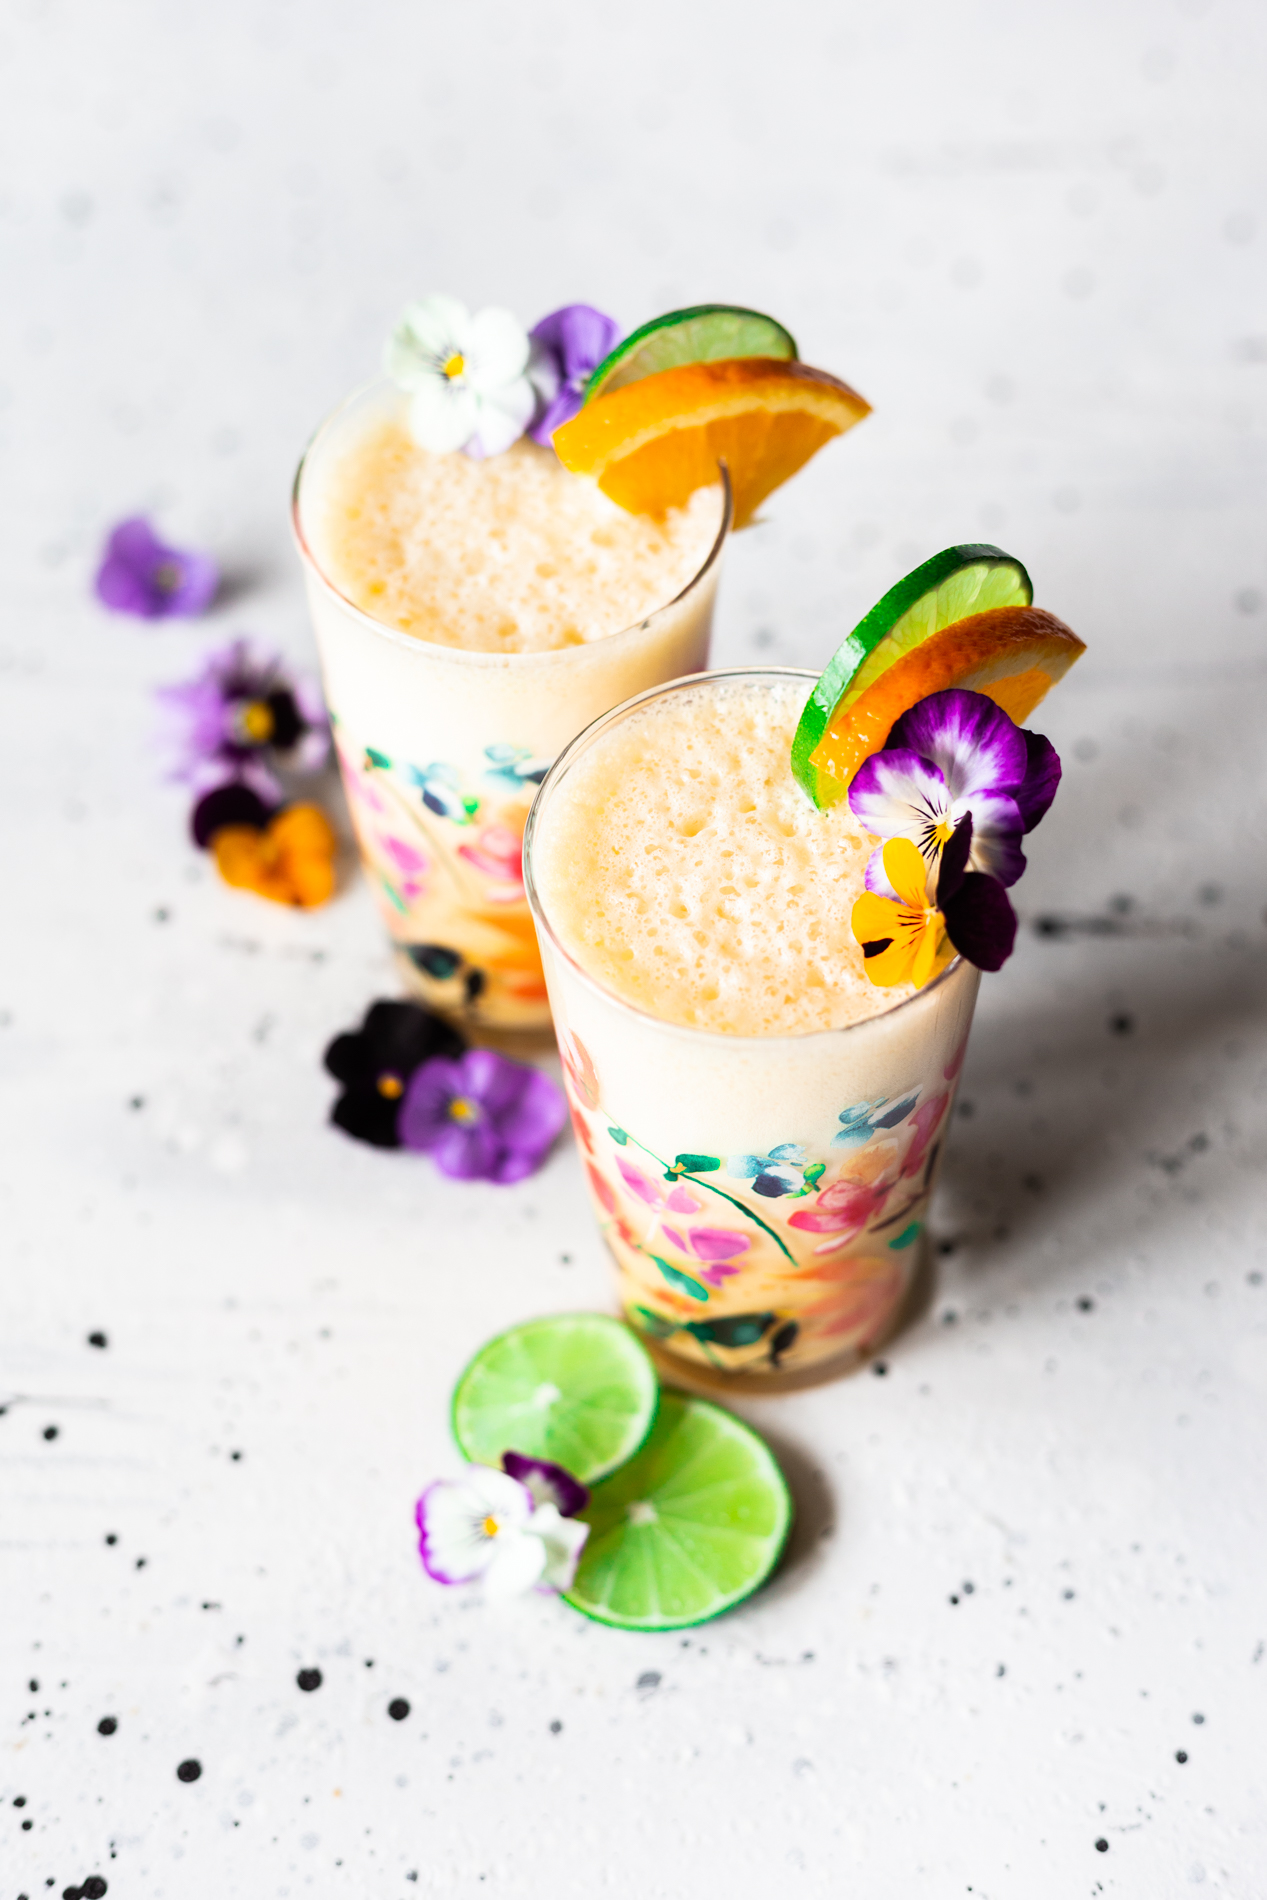 angled view of two glasses of homemade orange julius with orange and lime slices and fresh edible flowers